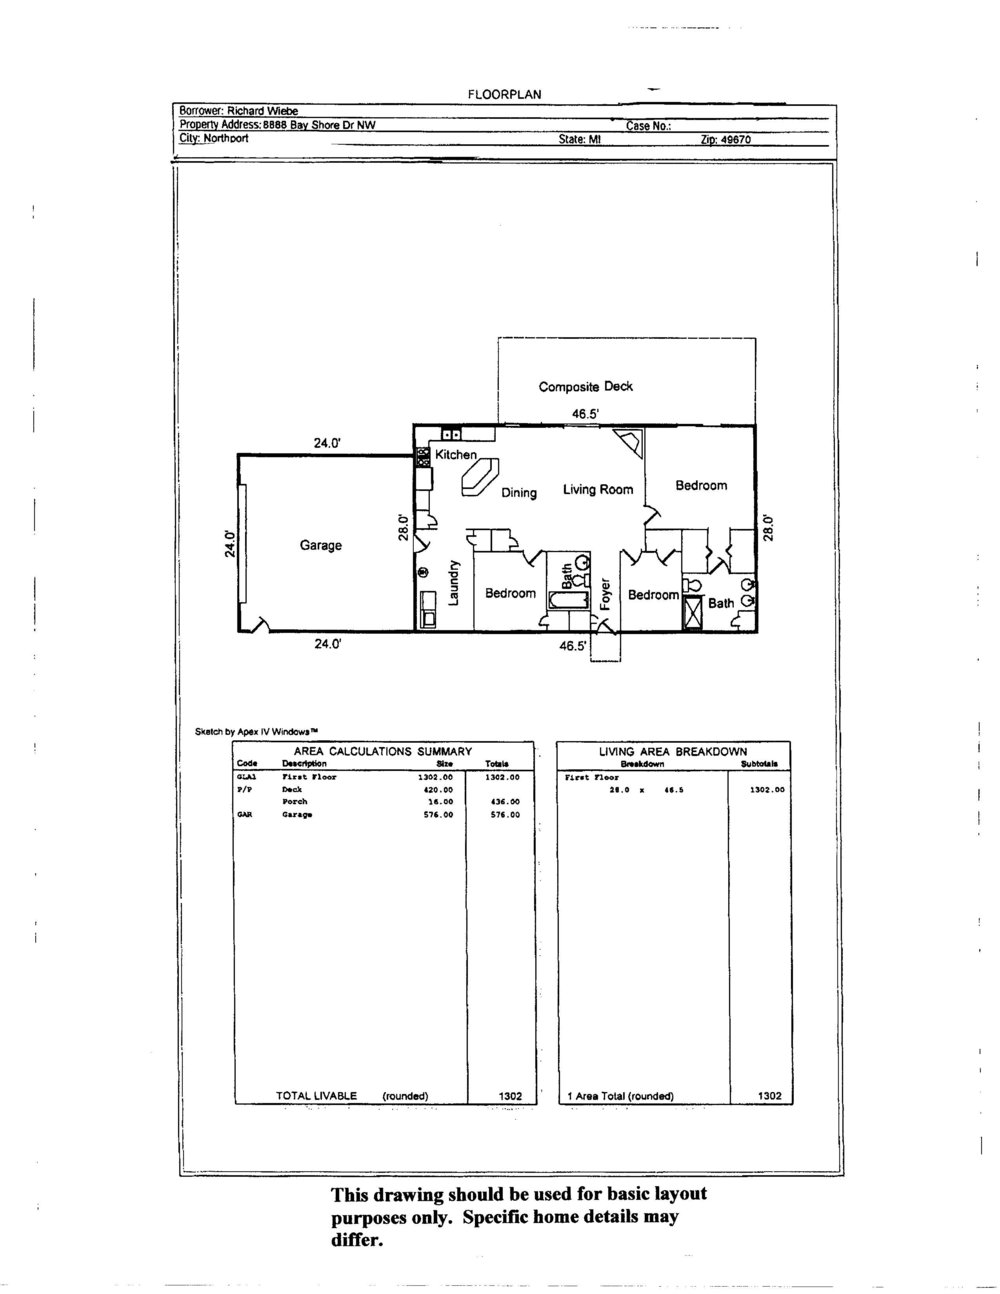 8888 NW Bay Shore Drive, Northport Marketing Packet - For Sale by Oltersdorf Realty LLC_Page_08.jpg